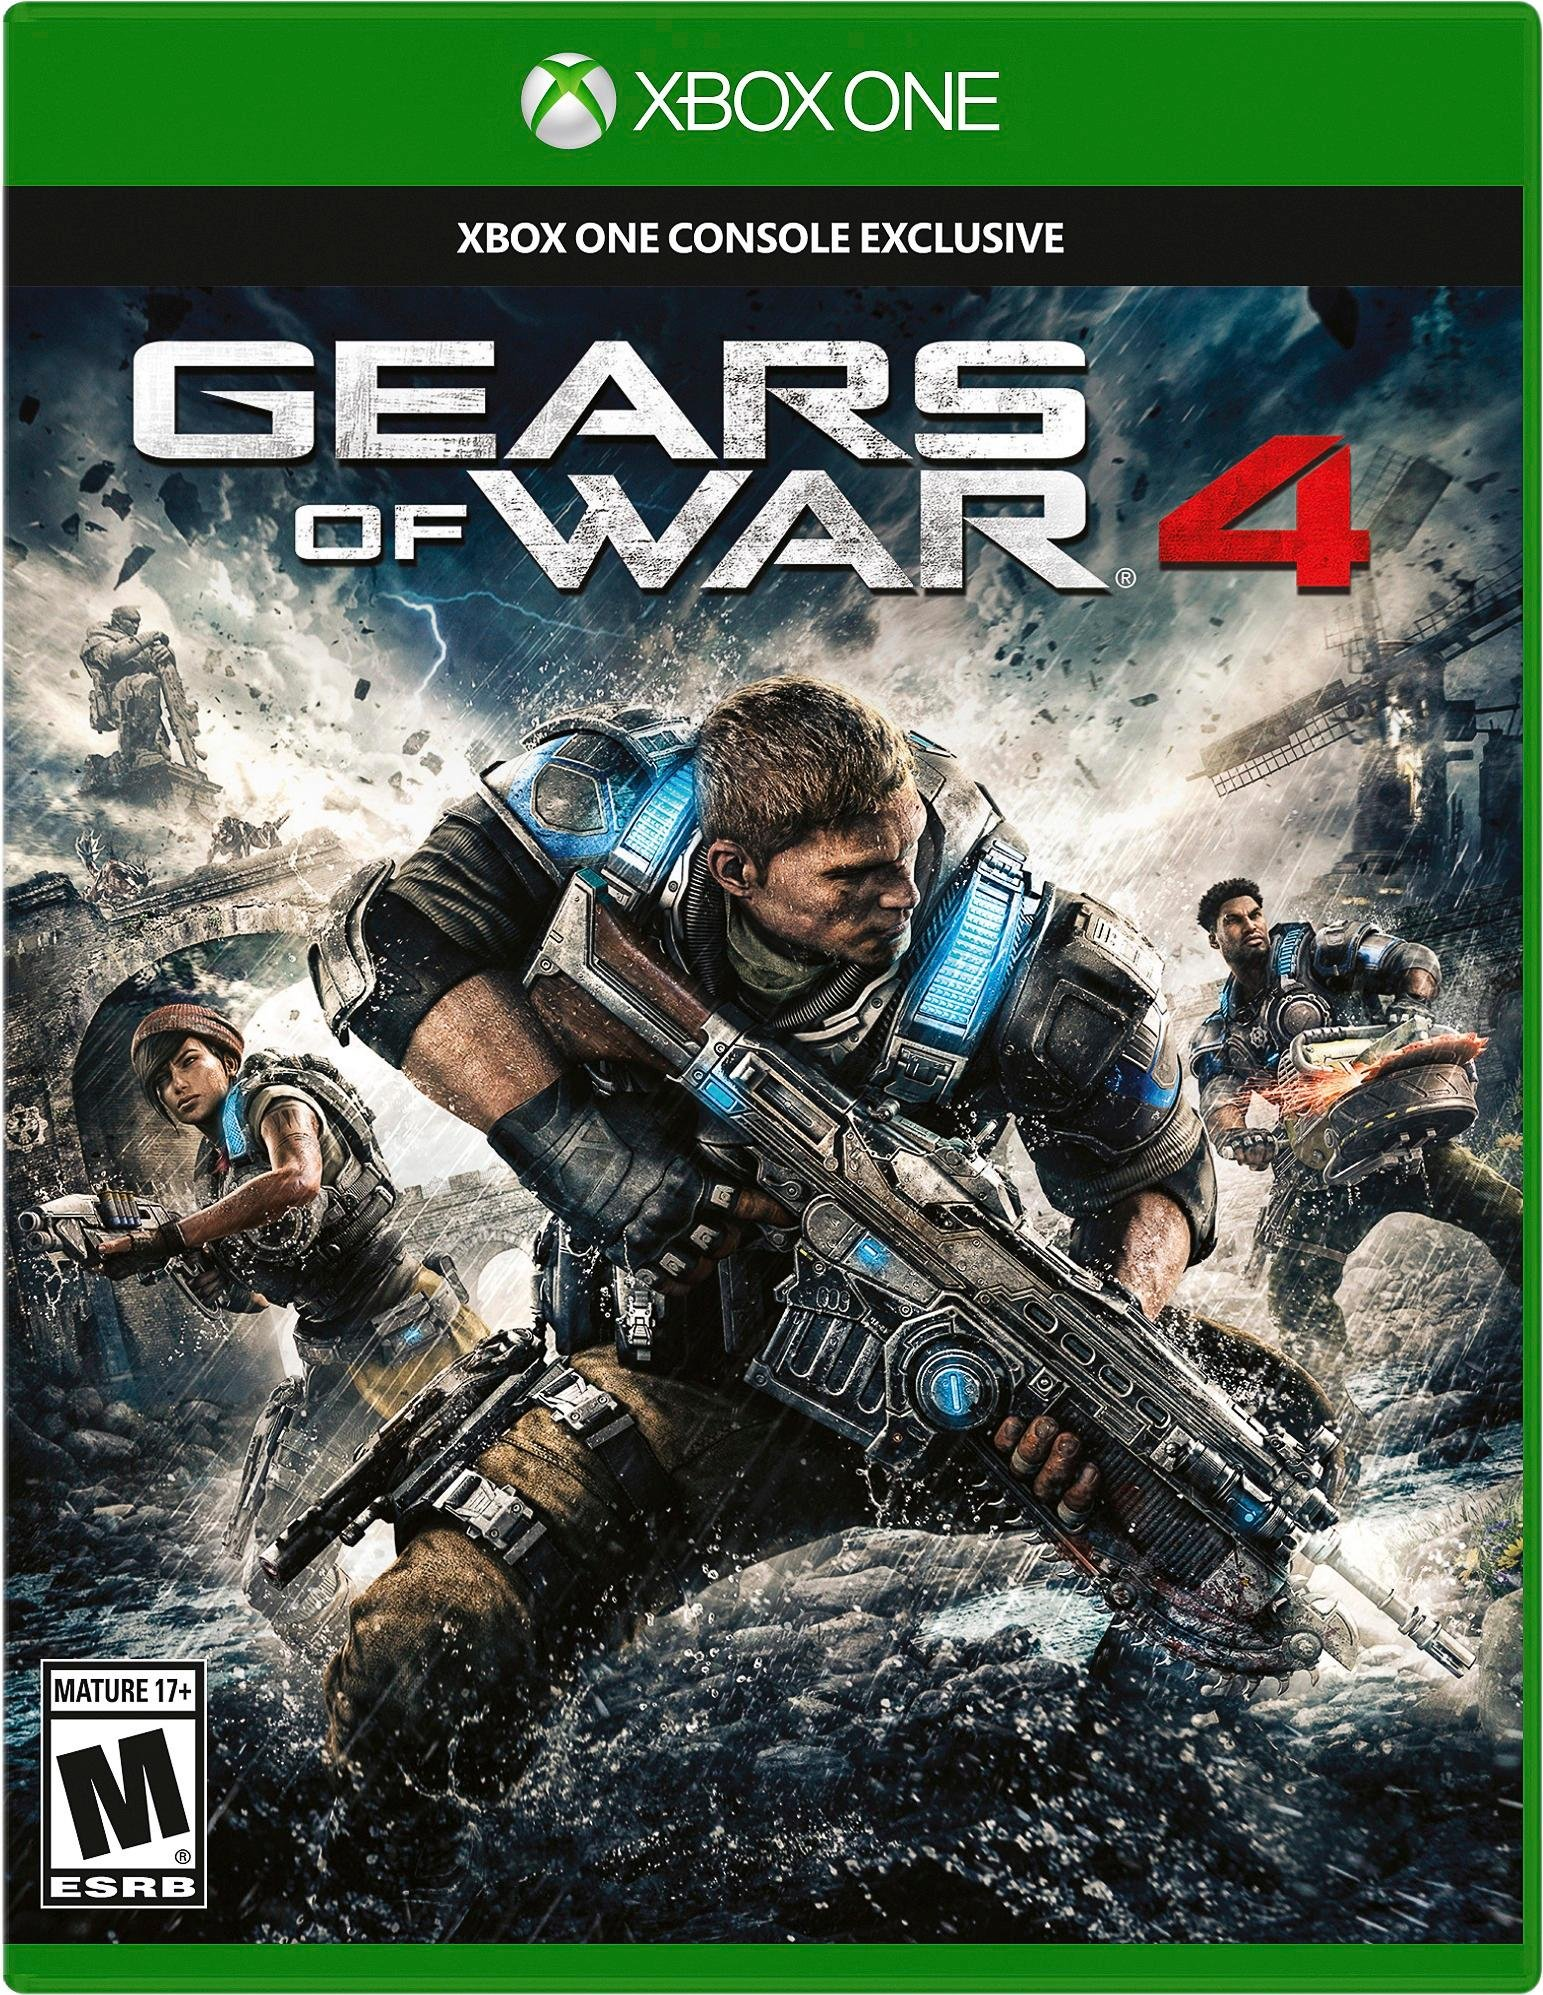 Gears of War 4 - Xbox One - Standard Edition product image